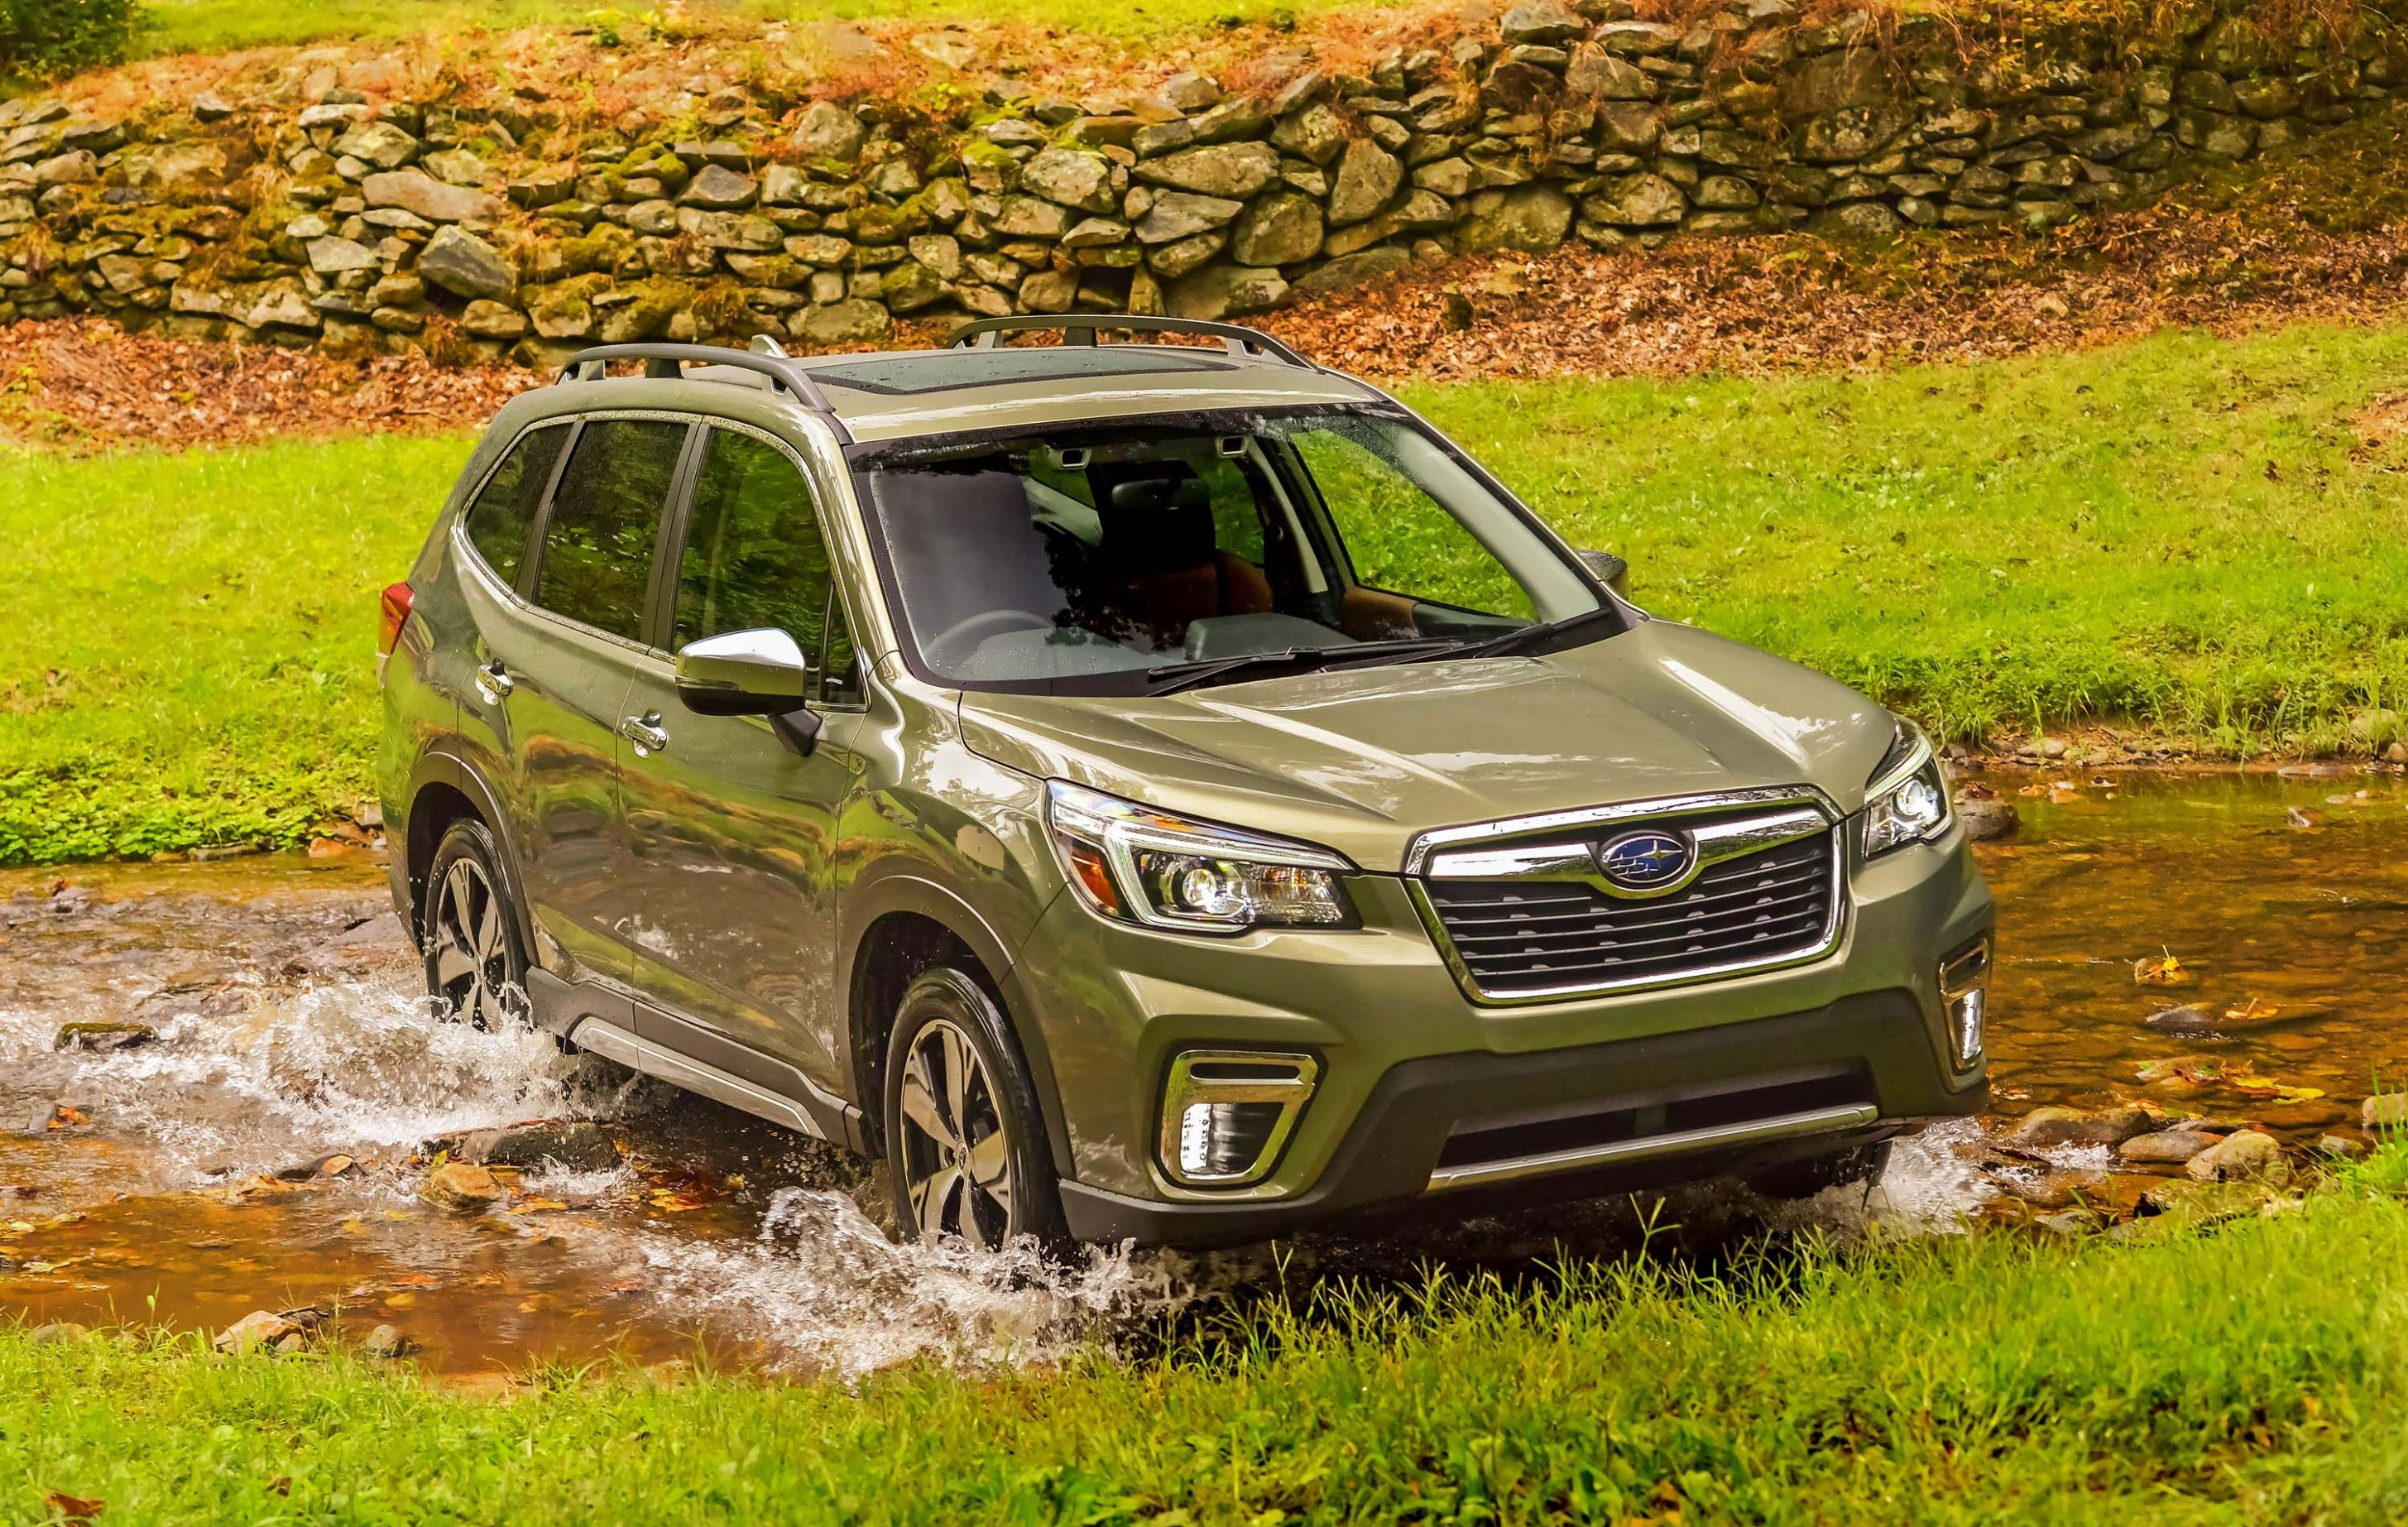 Five Things Your Boss Needs To Know About 2020 Subaru Forester Quick Reference Guide Subaru Forester Subaru Concept Cars